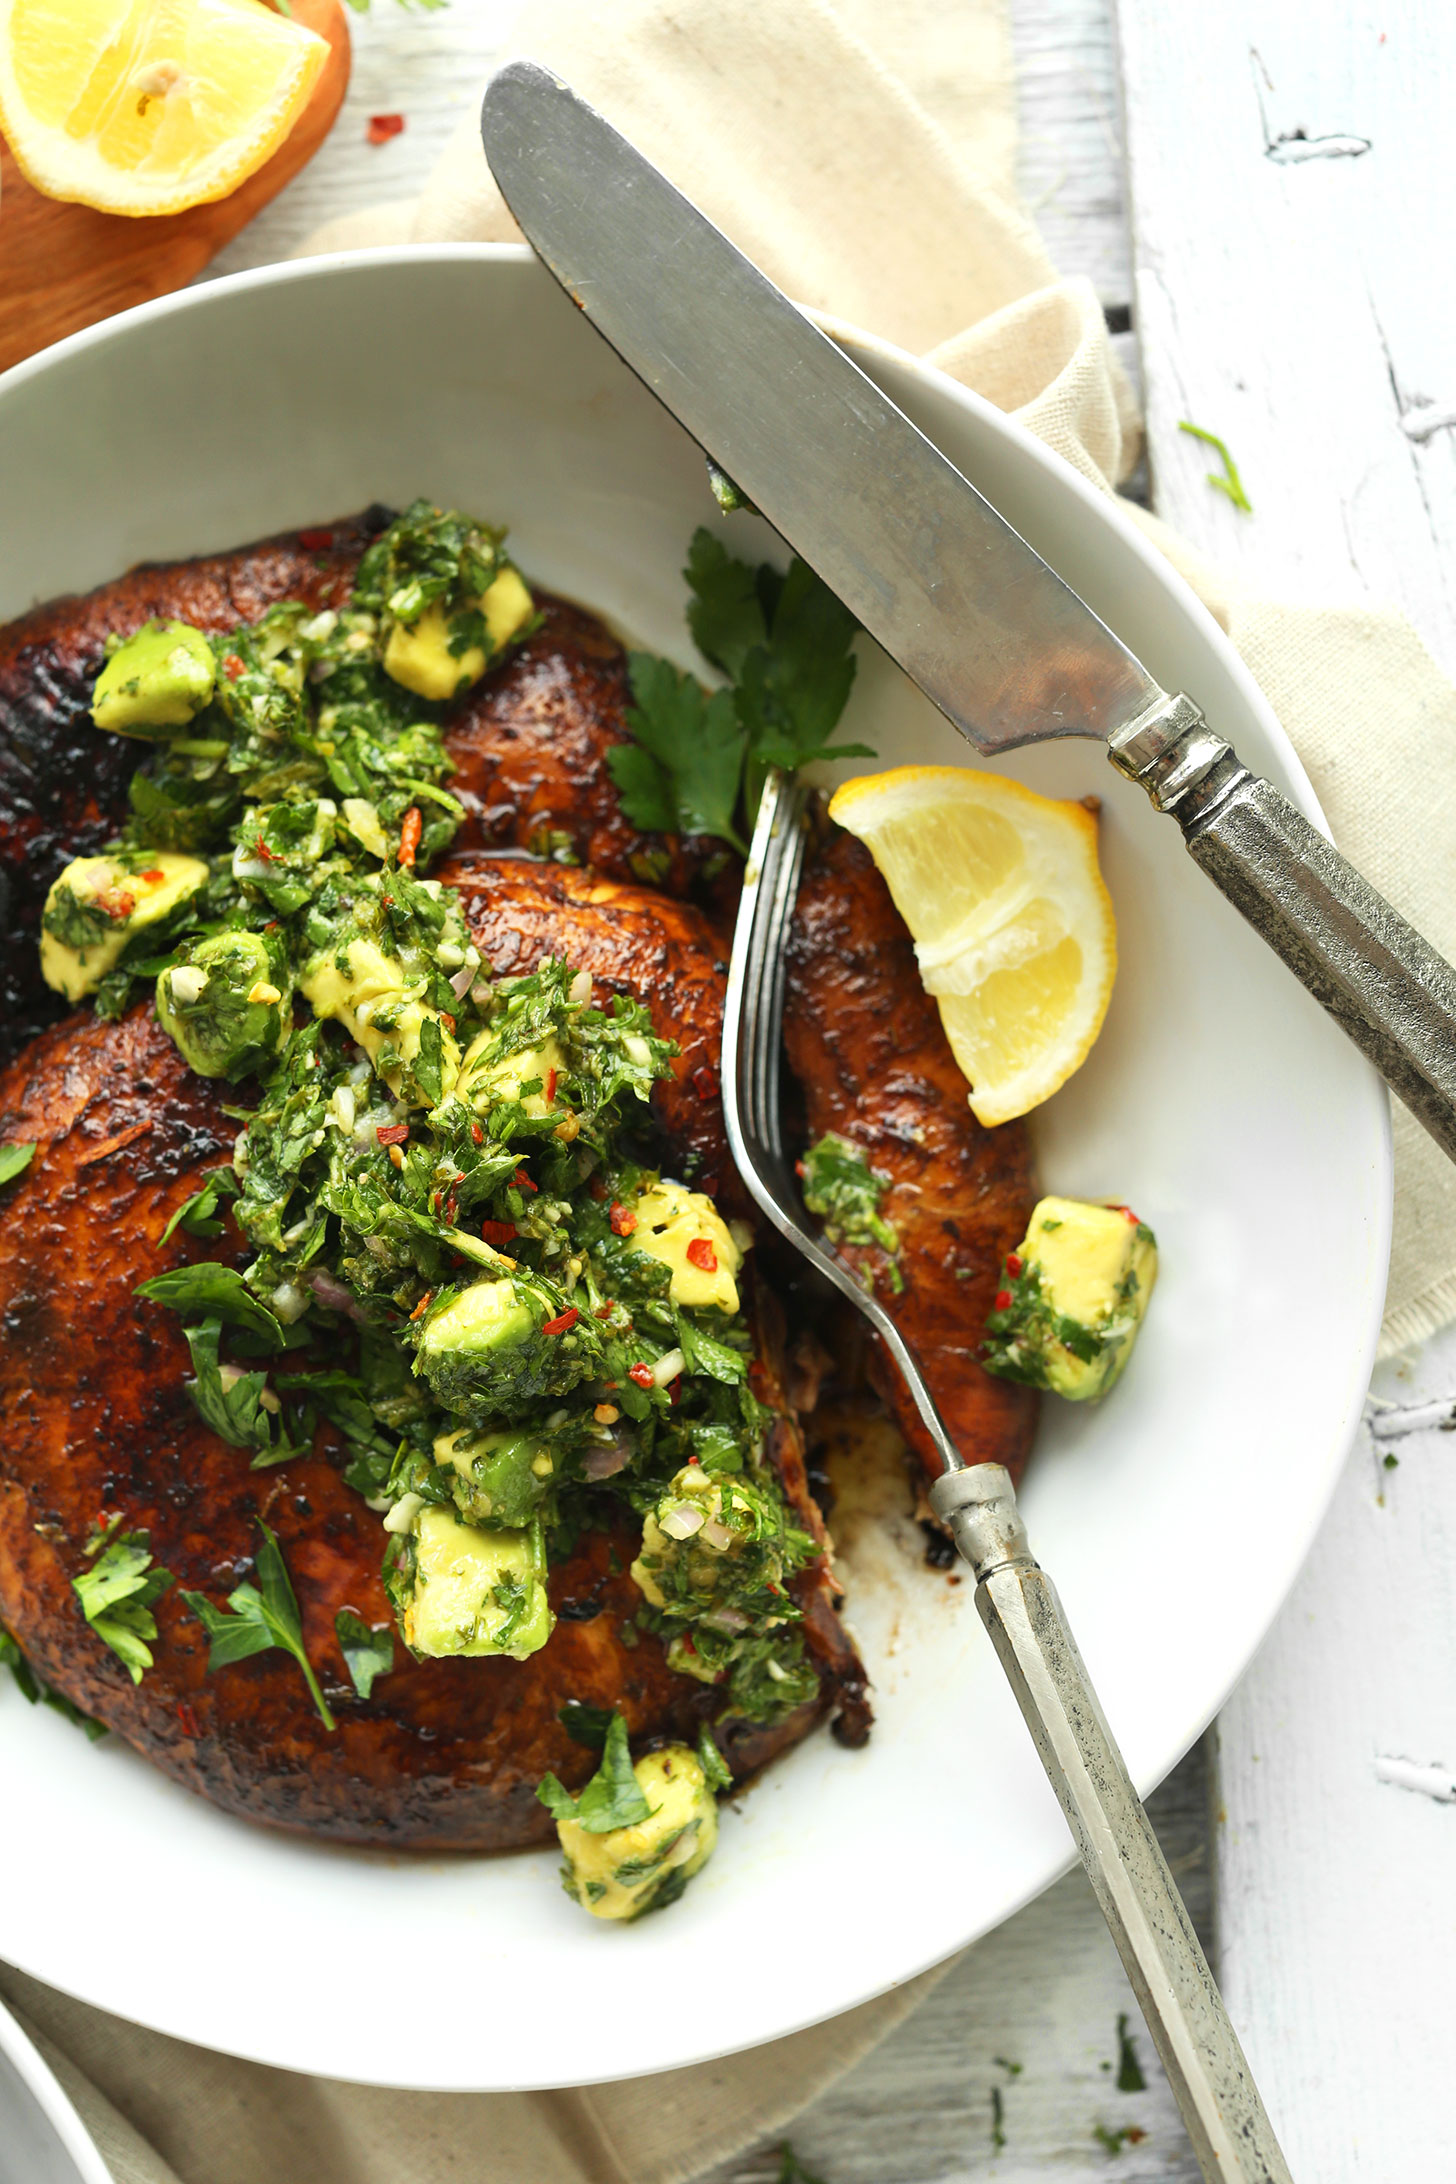 Using a fork to cut into a Grilled Portobello Steak with Avocado Chimichurri